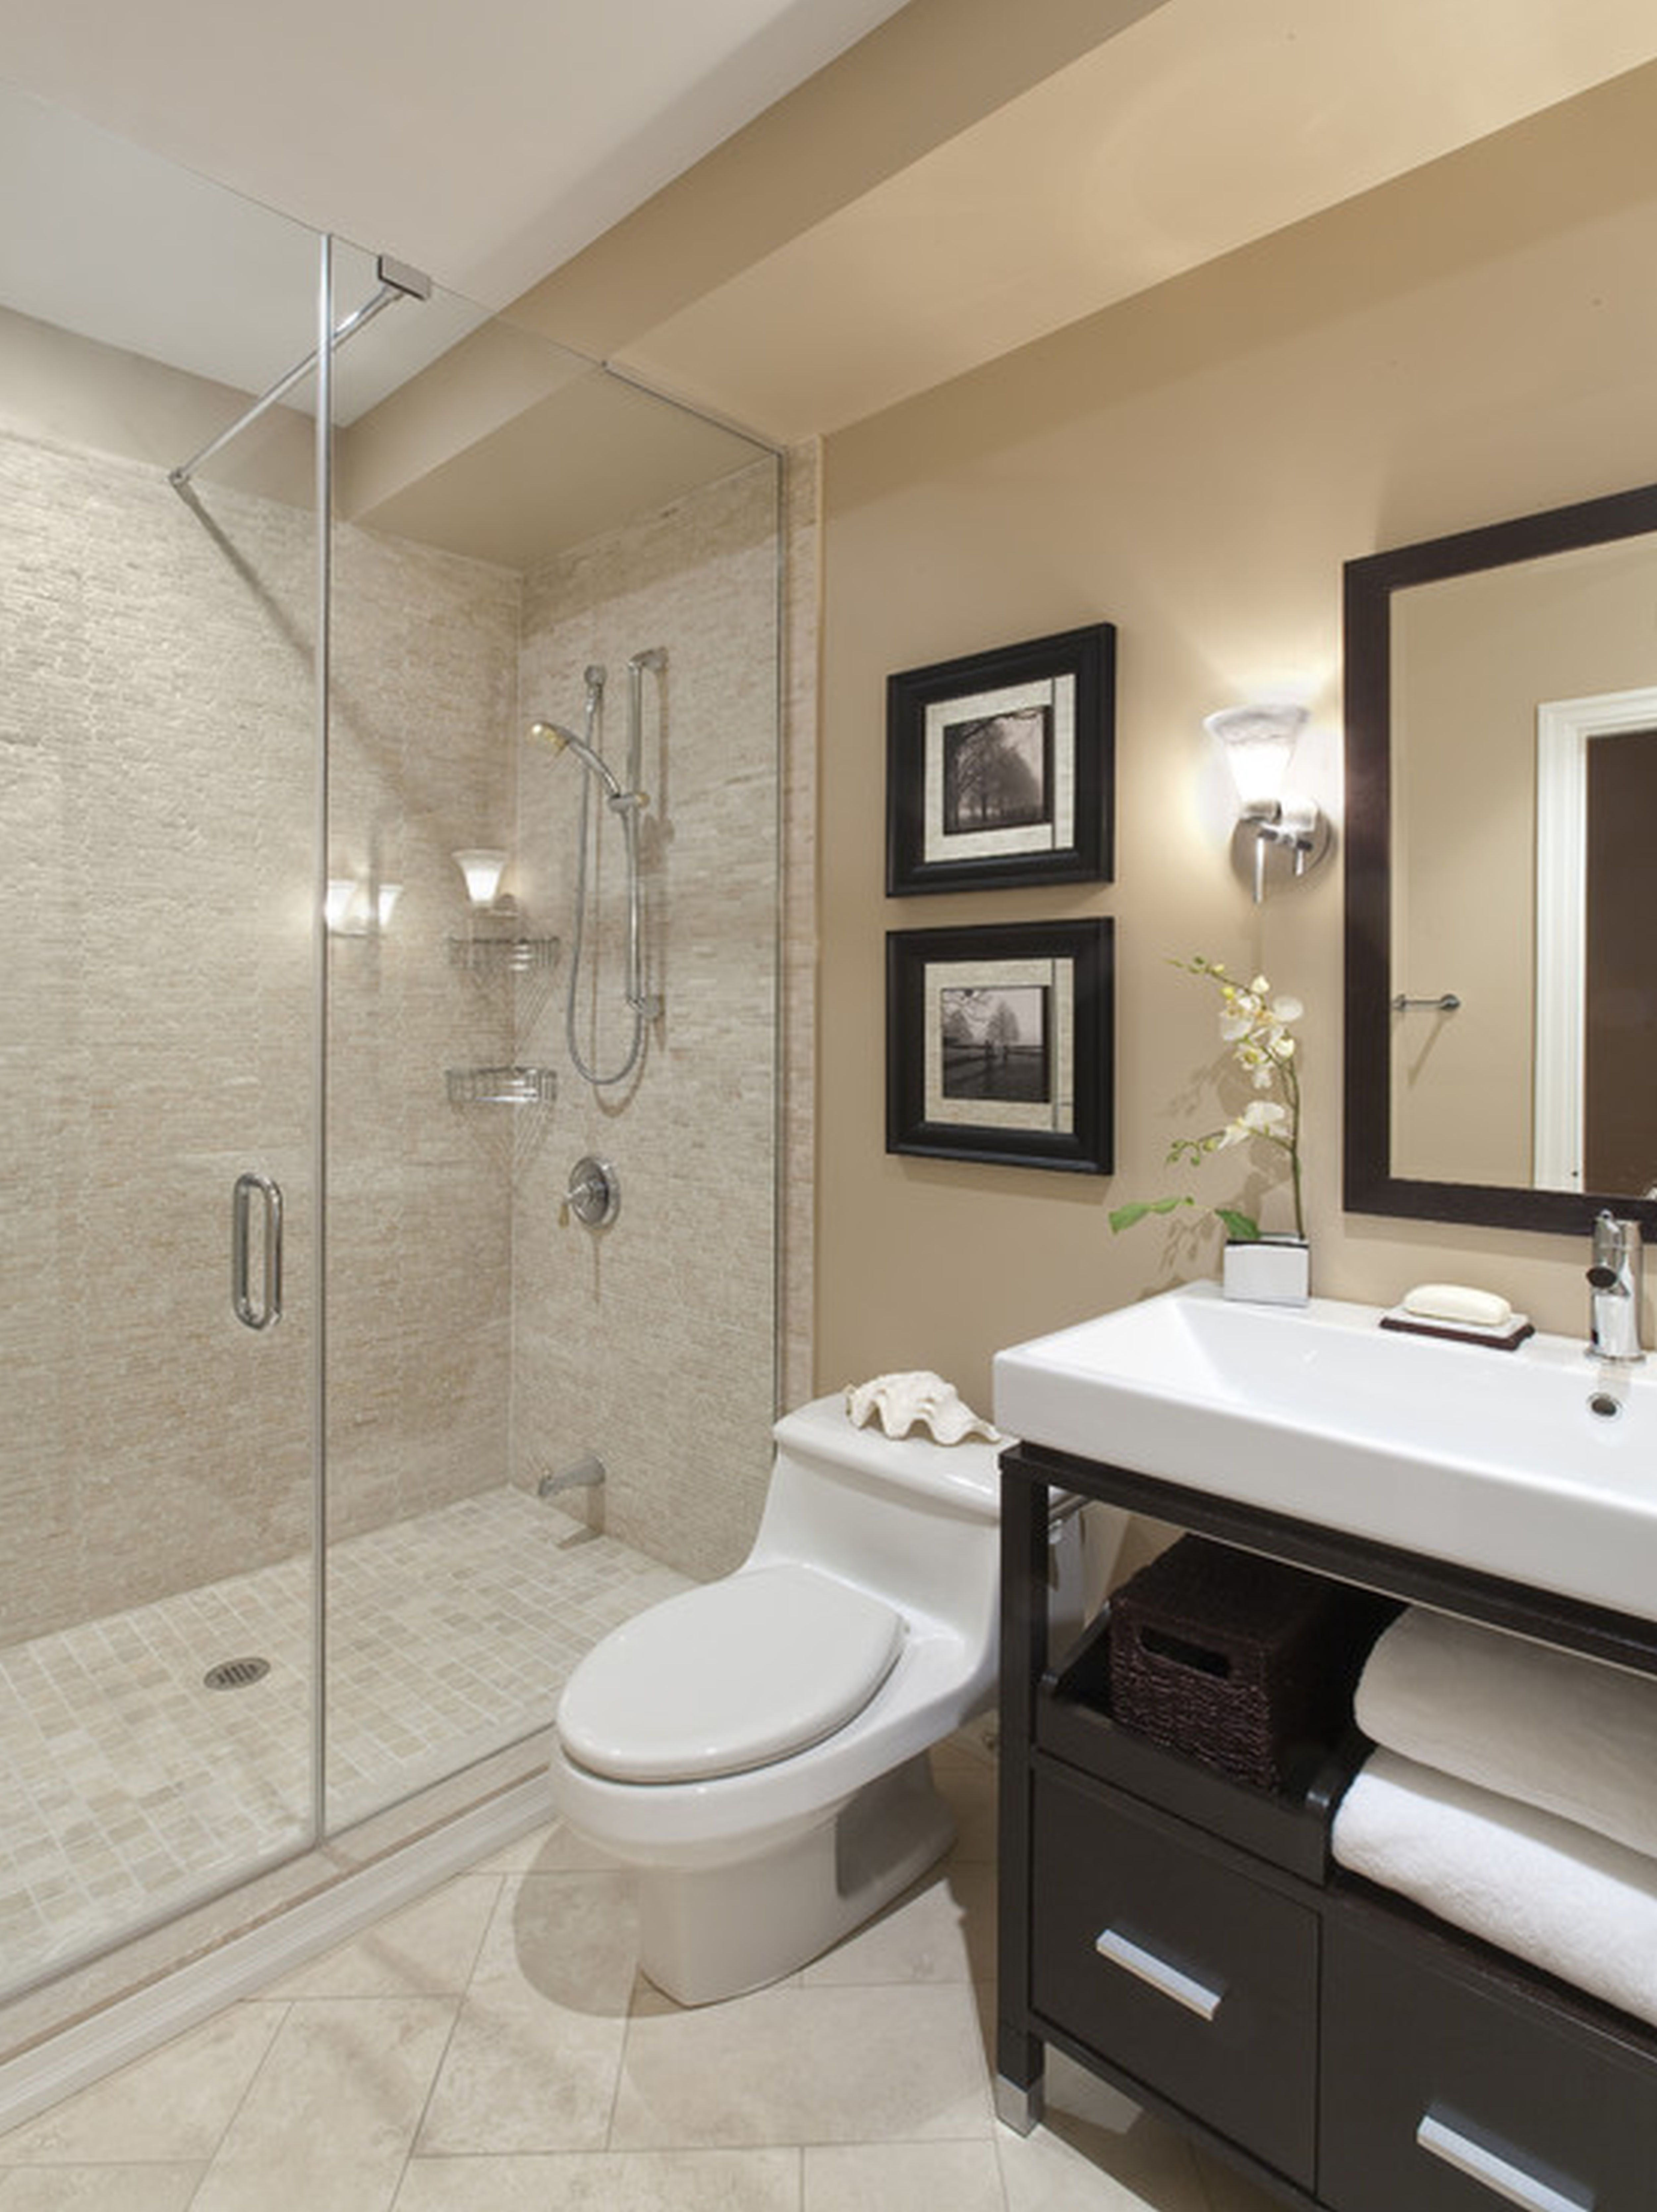 small bathroom remodel design ideas makeover renovation before and after on a bud photo gallery smallbathroomremodel